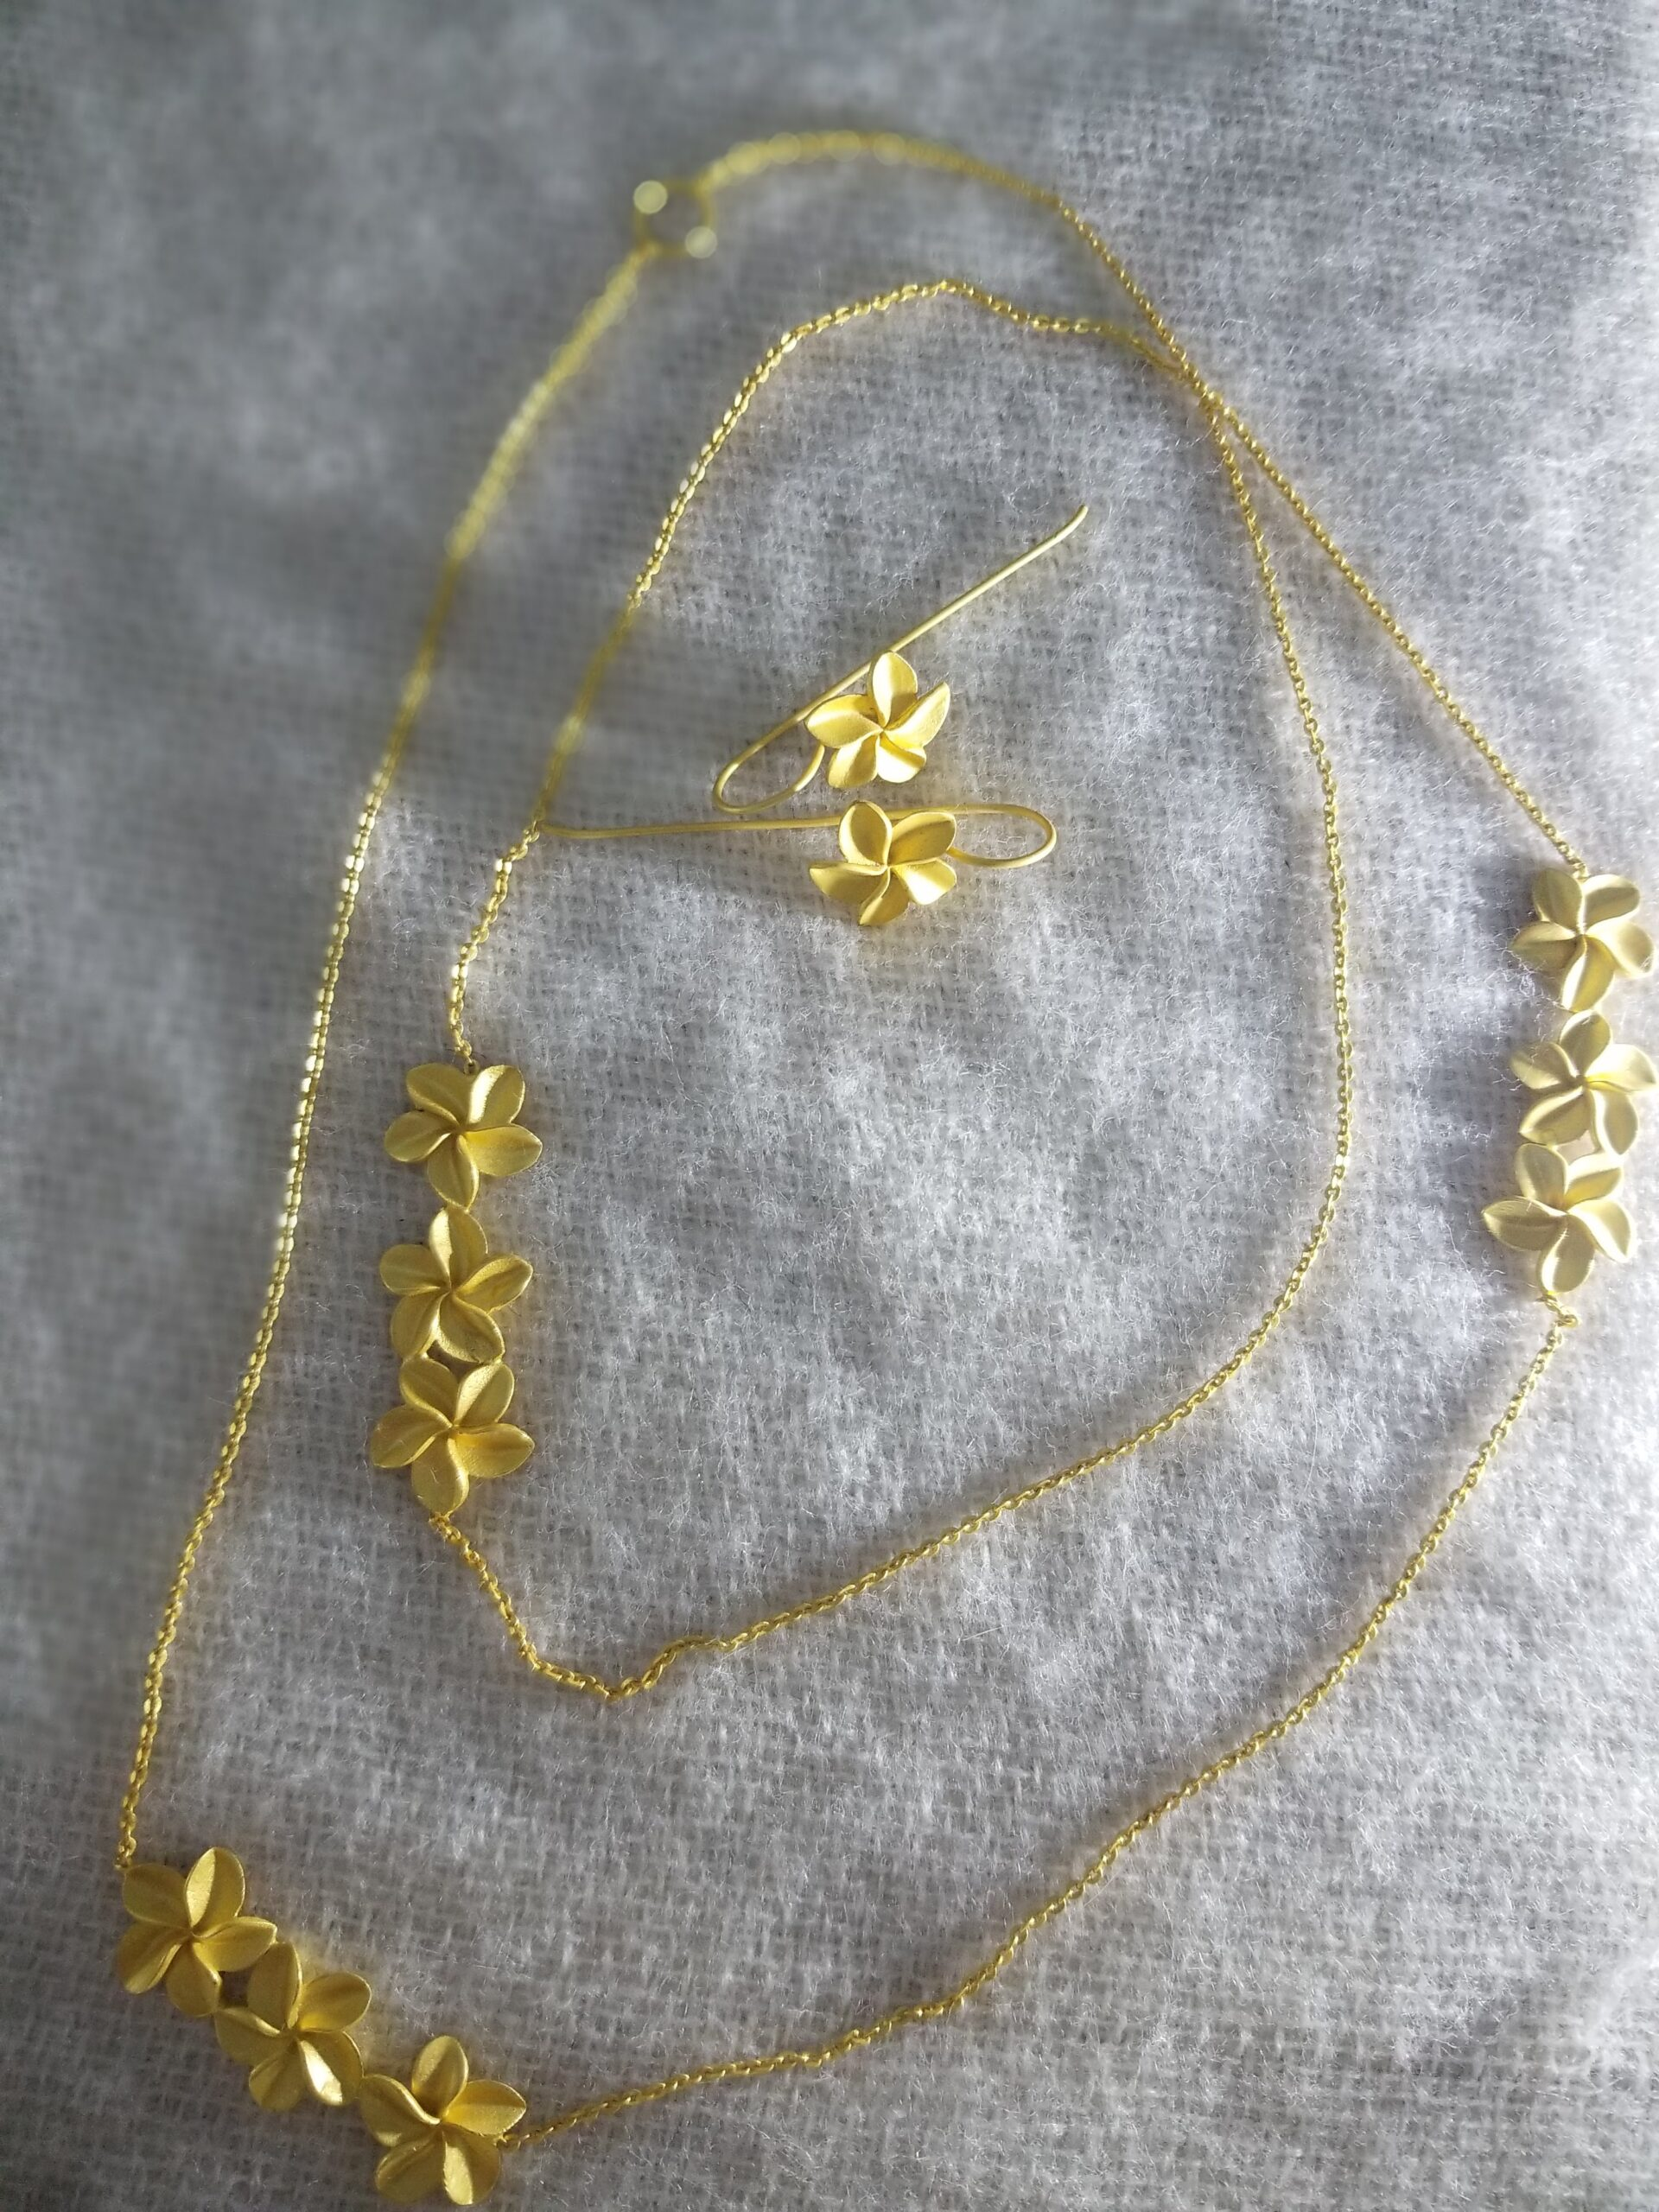 gold toned modern style plumeria blossom necklace and earrings